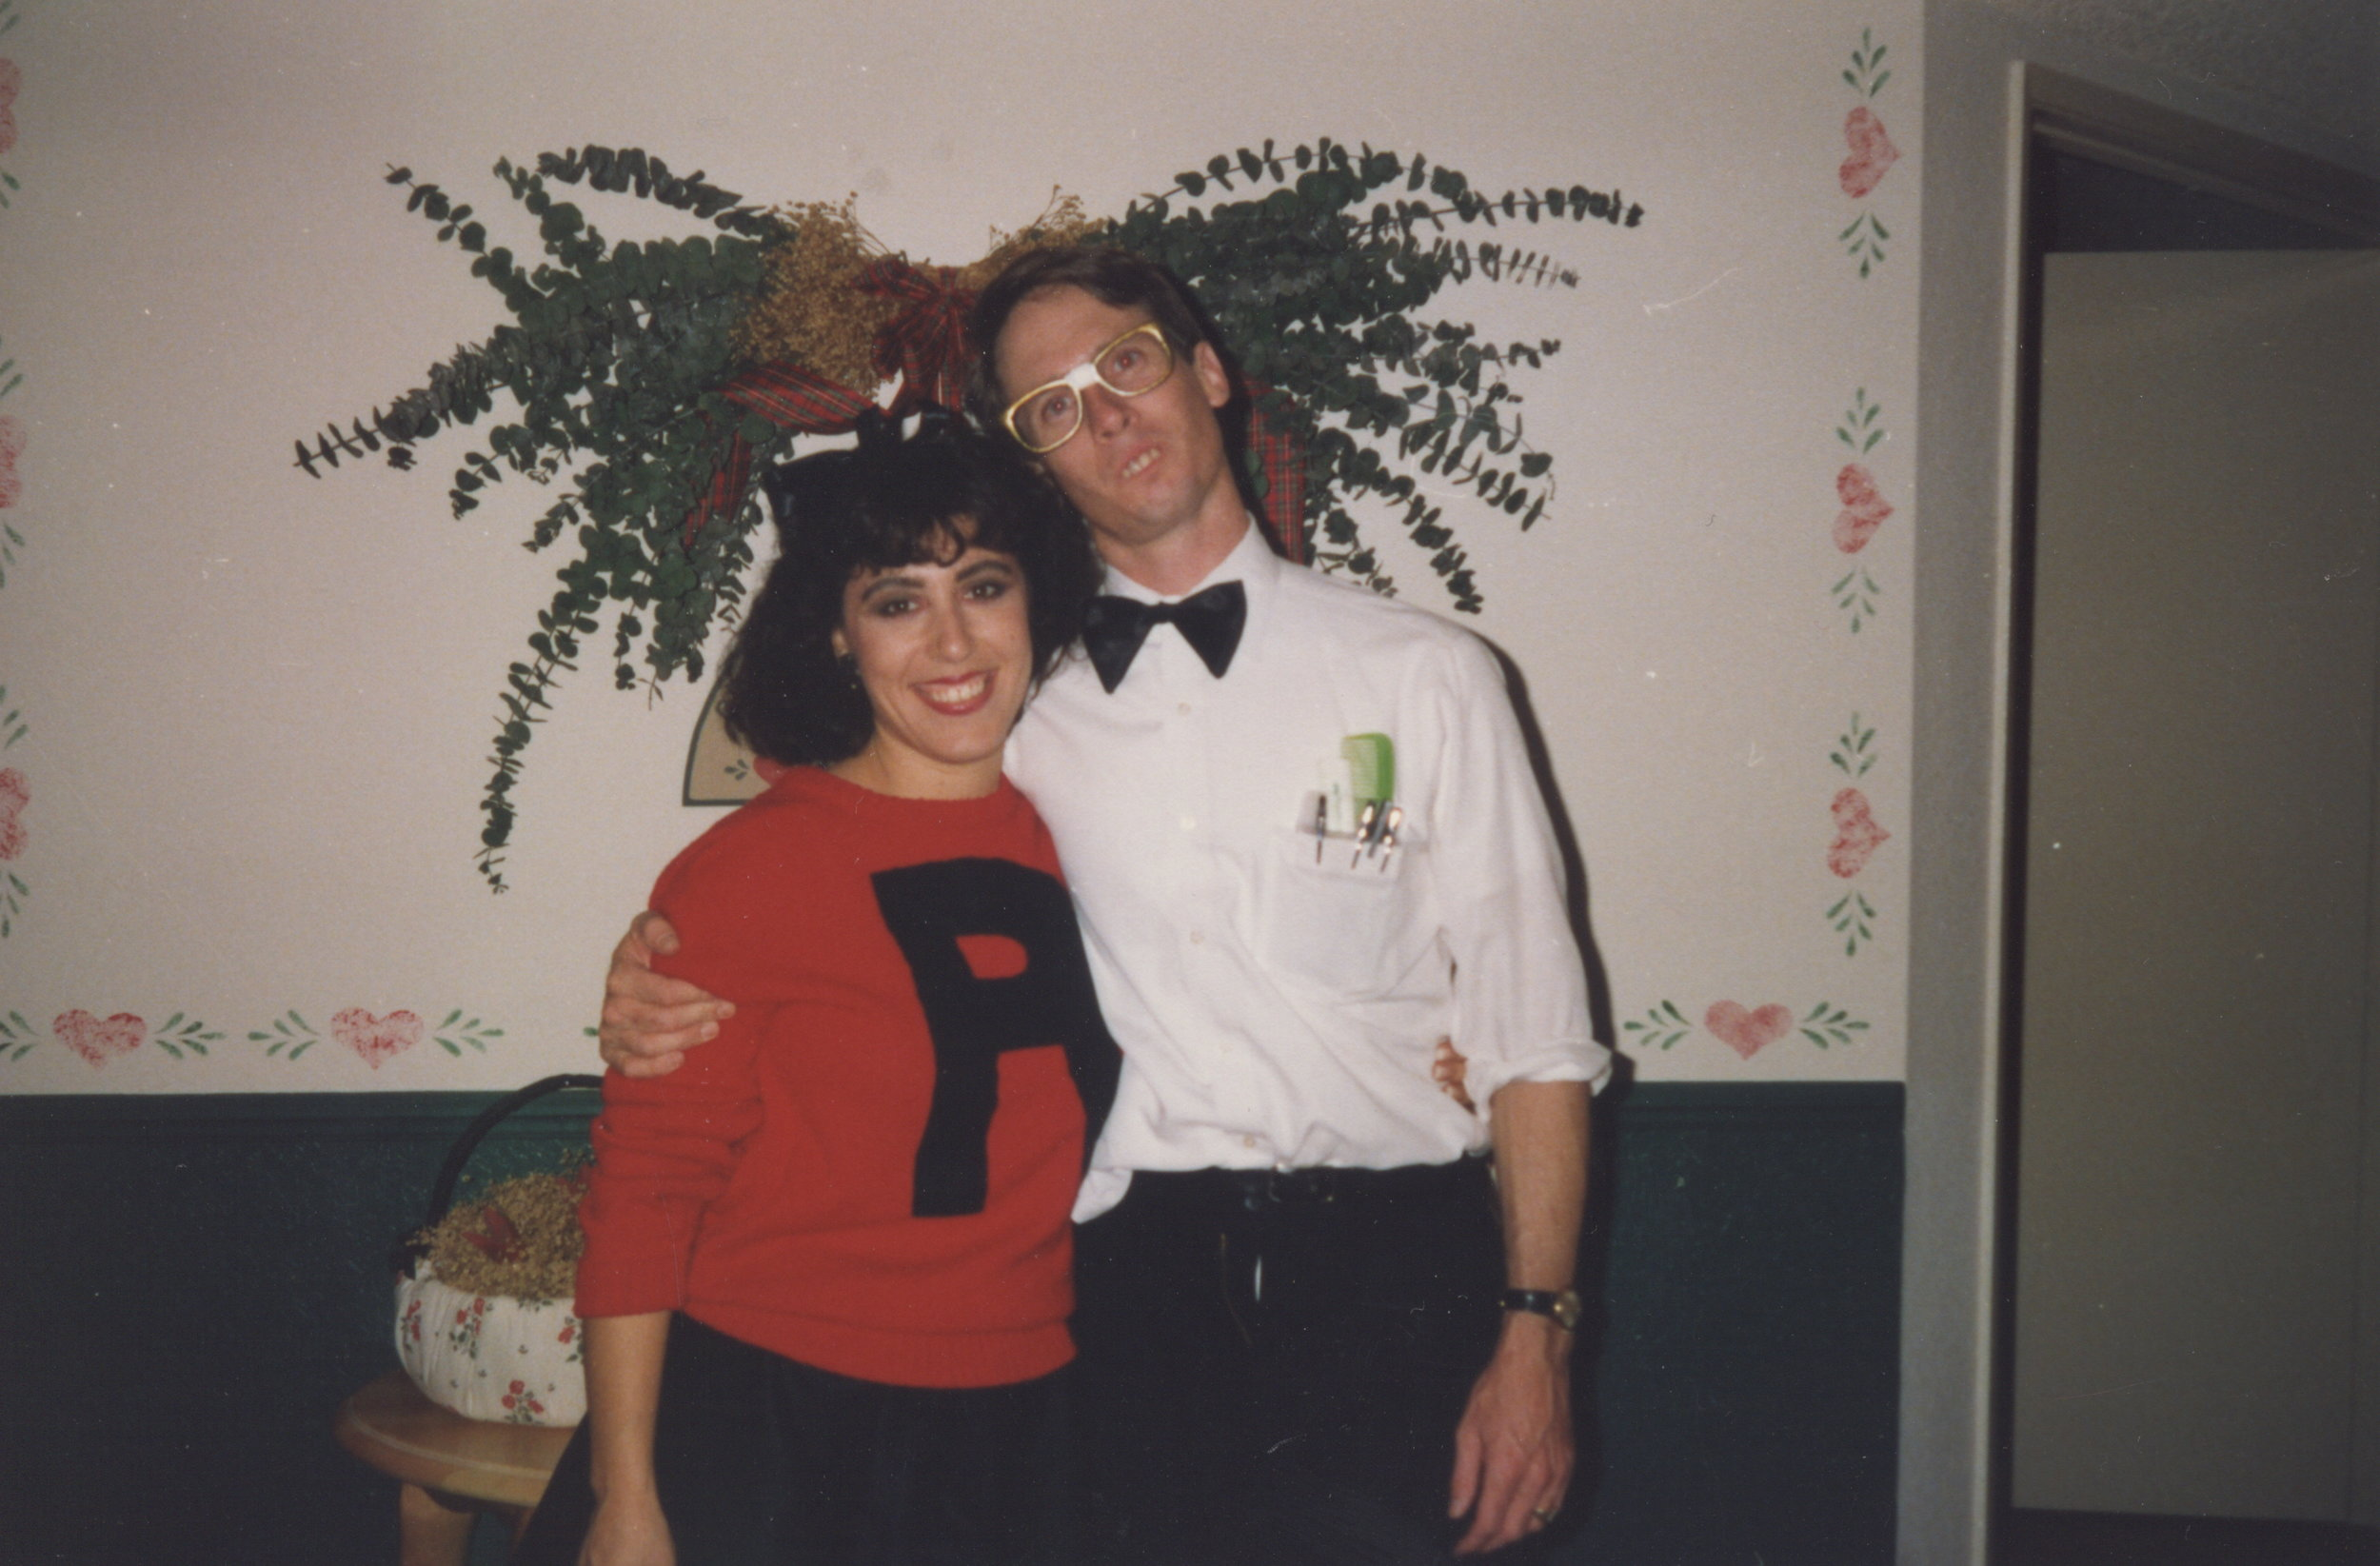 Bryan's parents all dressed up for a costume party